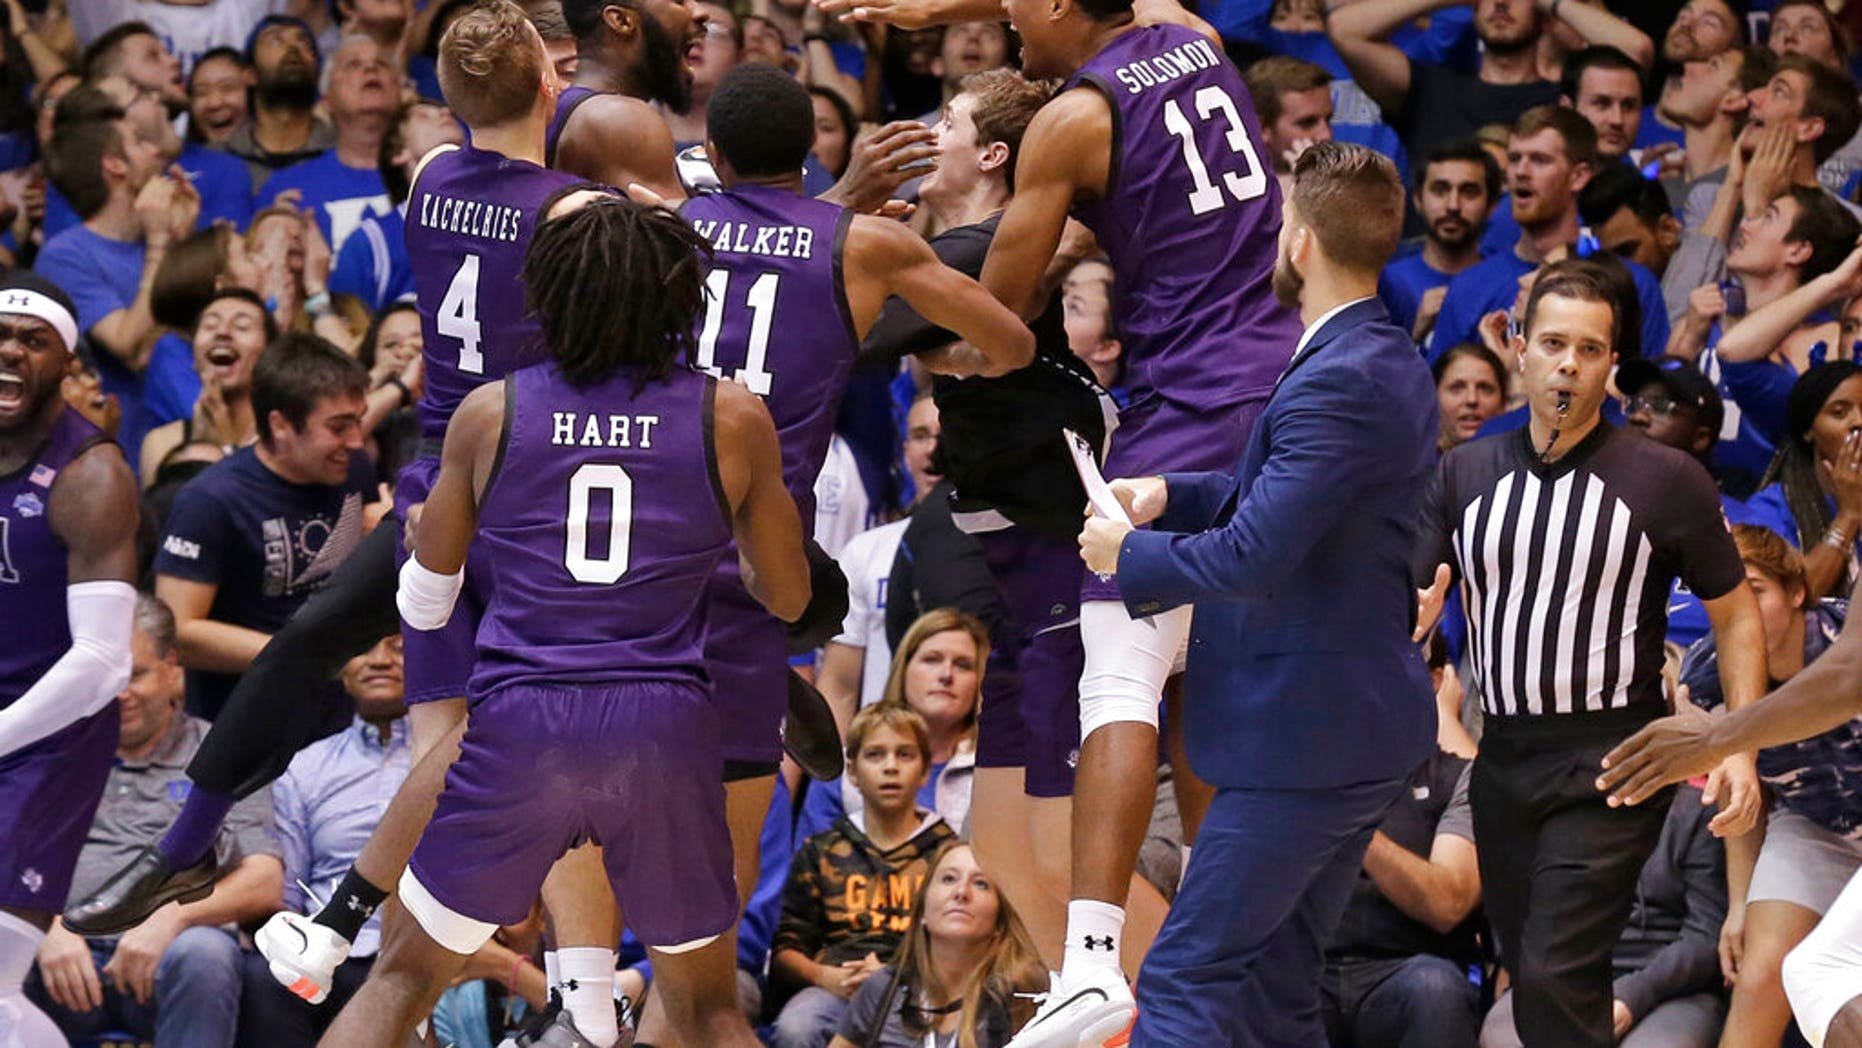 Stephen F. Austin players celebrate the team's 85-83 overtime win over Duke in an NCAA college basketball game in Durham, N.C.